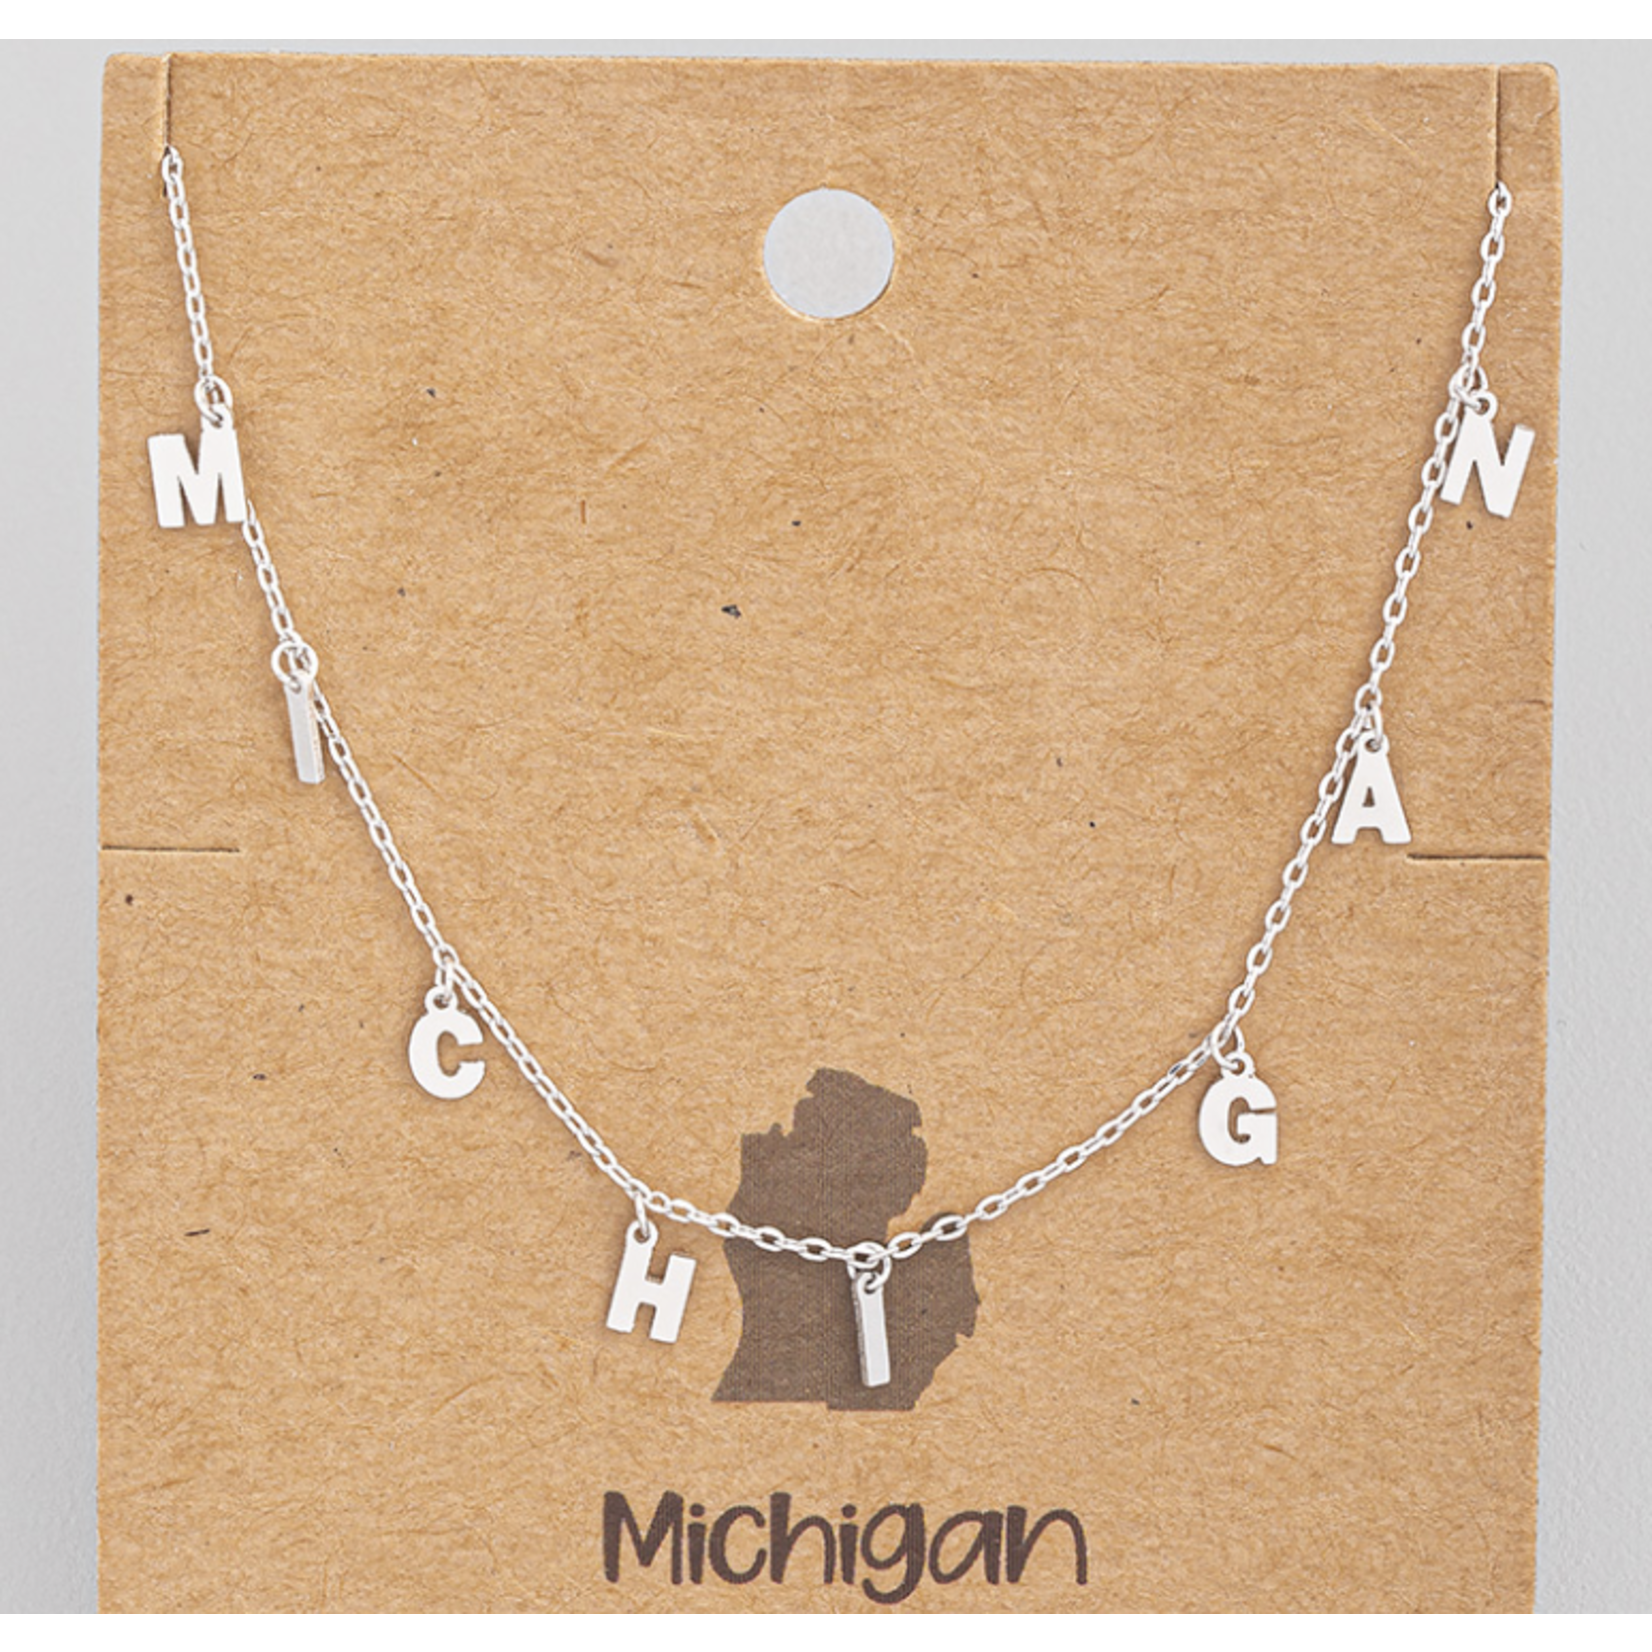 Necklace - M-I-C-H-I-G-A-N - letters in silver